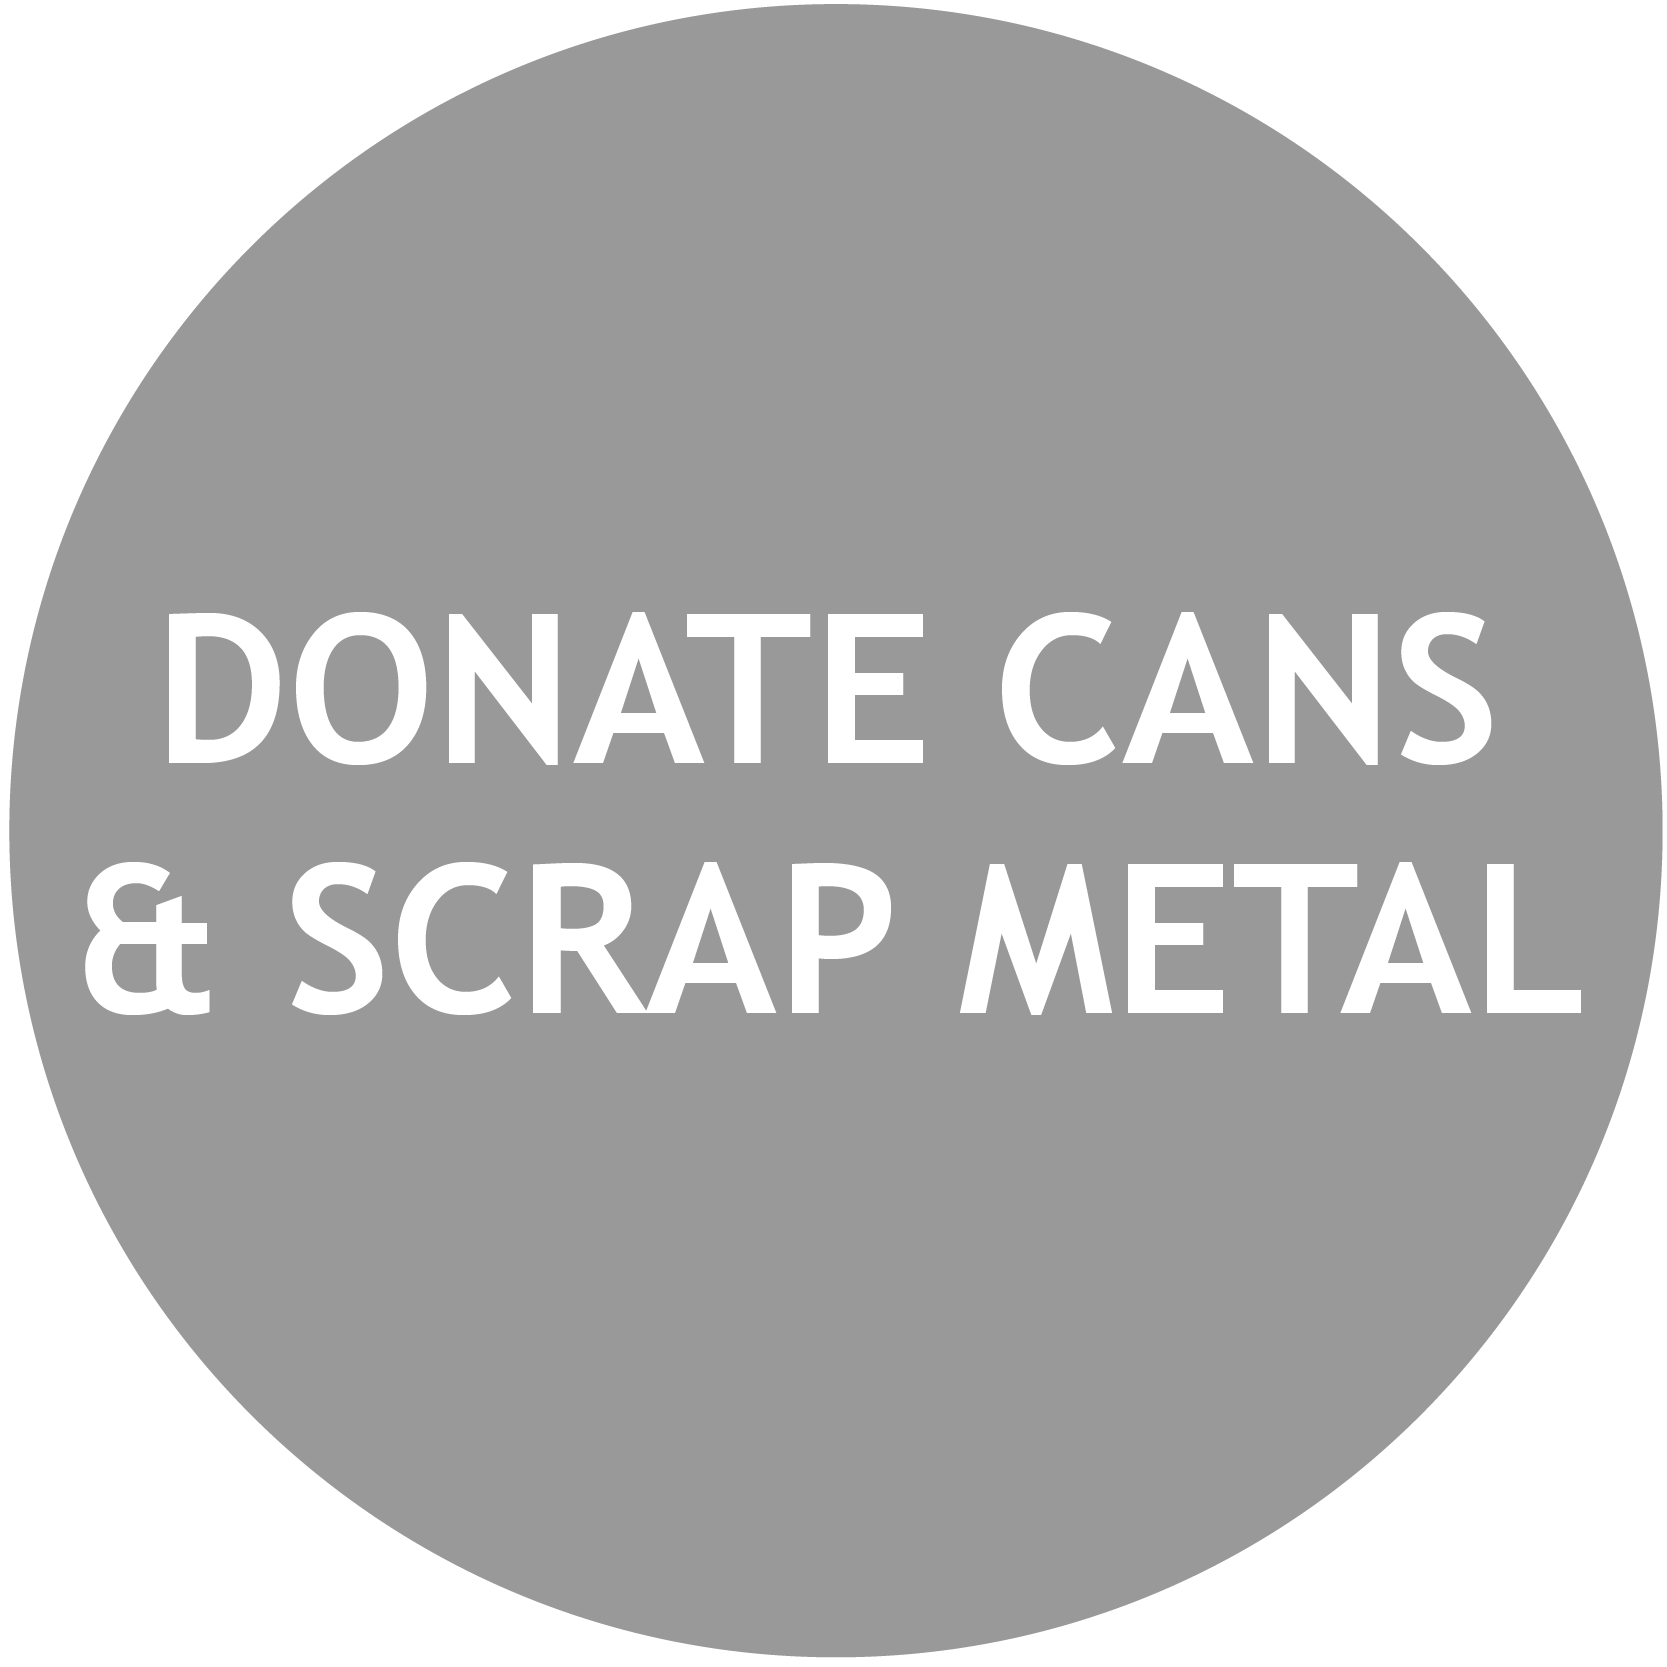 Cans-Metals-Circle-01.png